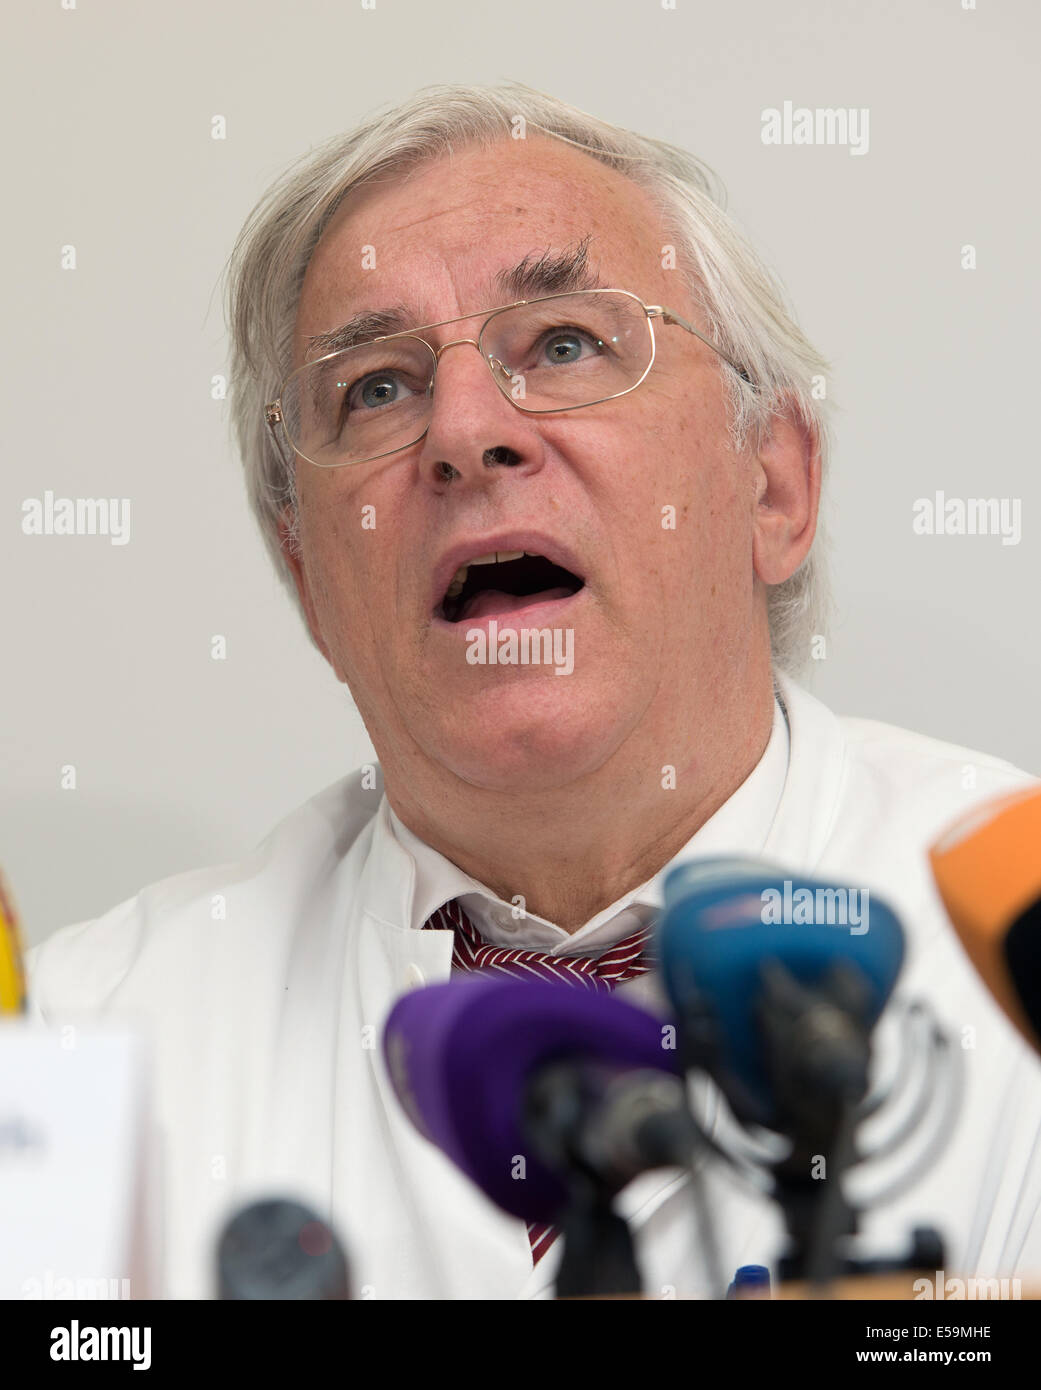 Munich, Germany. 24th July, 2014. The director of the Surgical Department and Outpatient Clinical Center Großhadern, - Stock Image